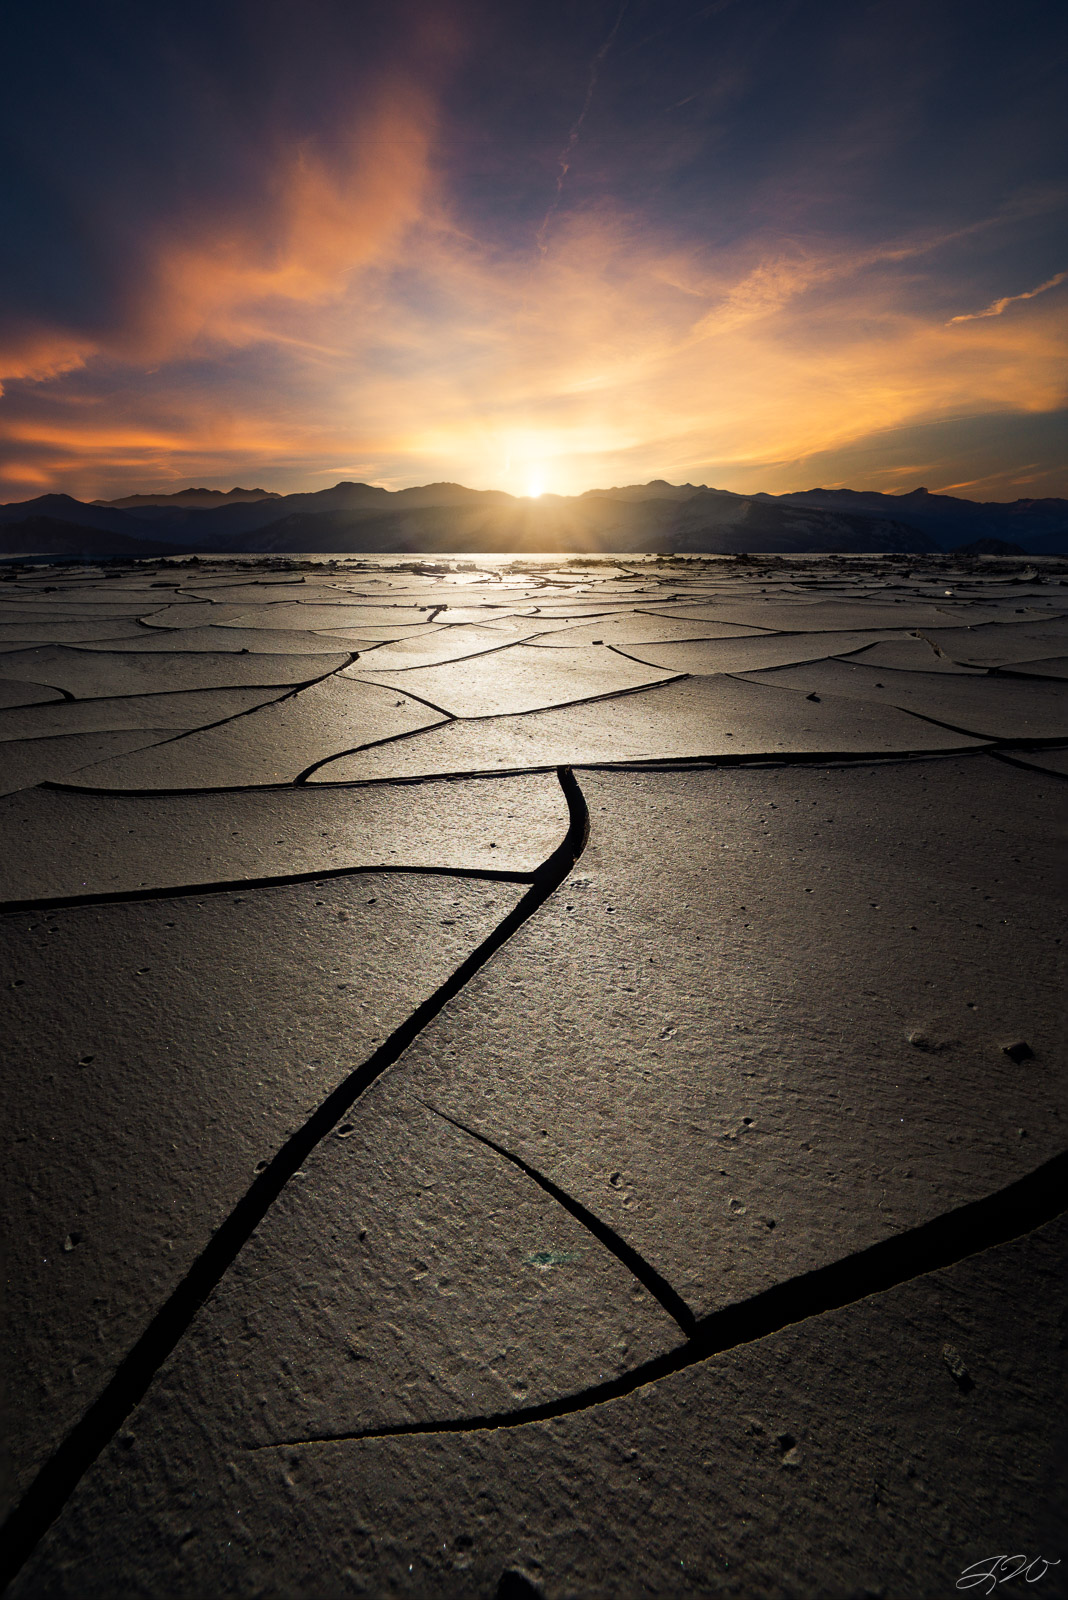 Fine Art Limited Edition of 100. The mud cracks sprawled out in every direction towards the mountains. The sun rose and illuminated...